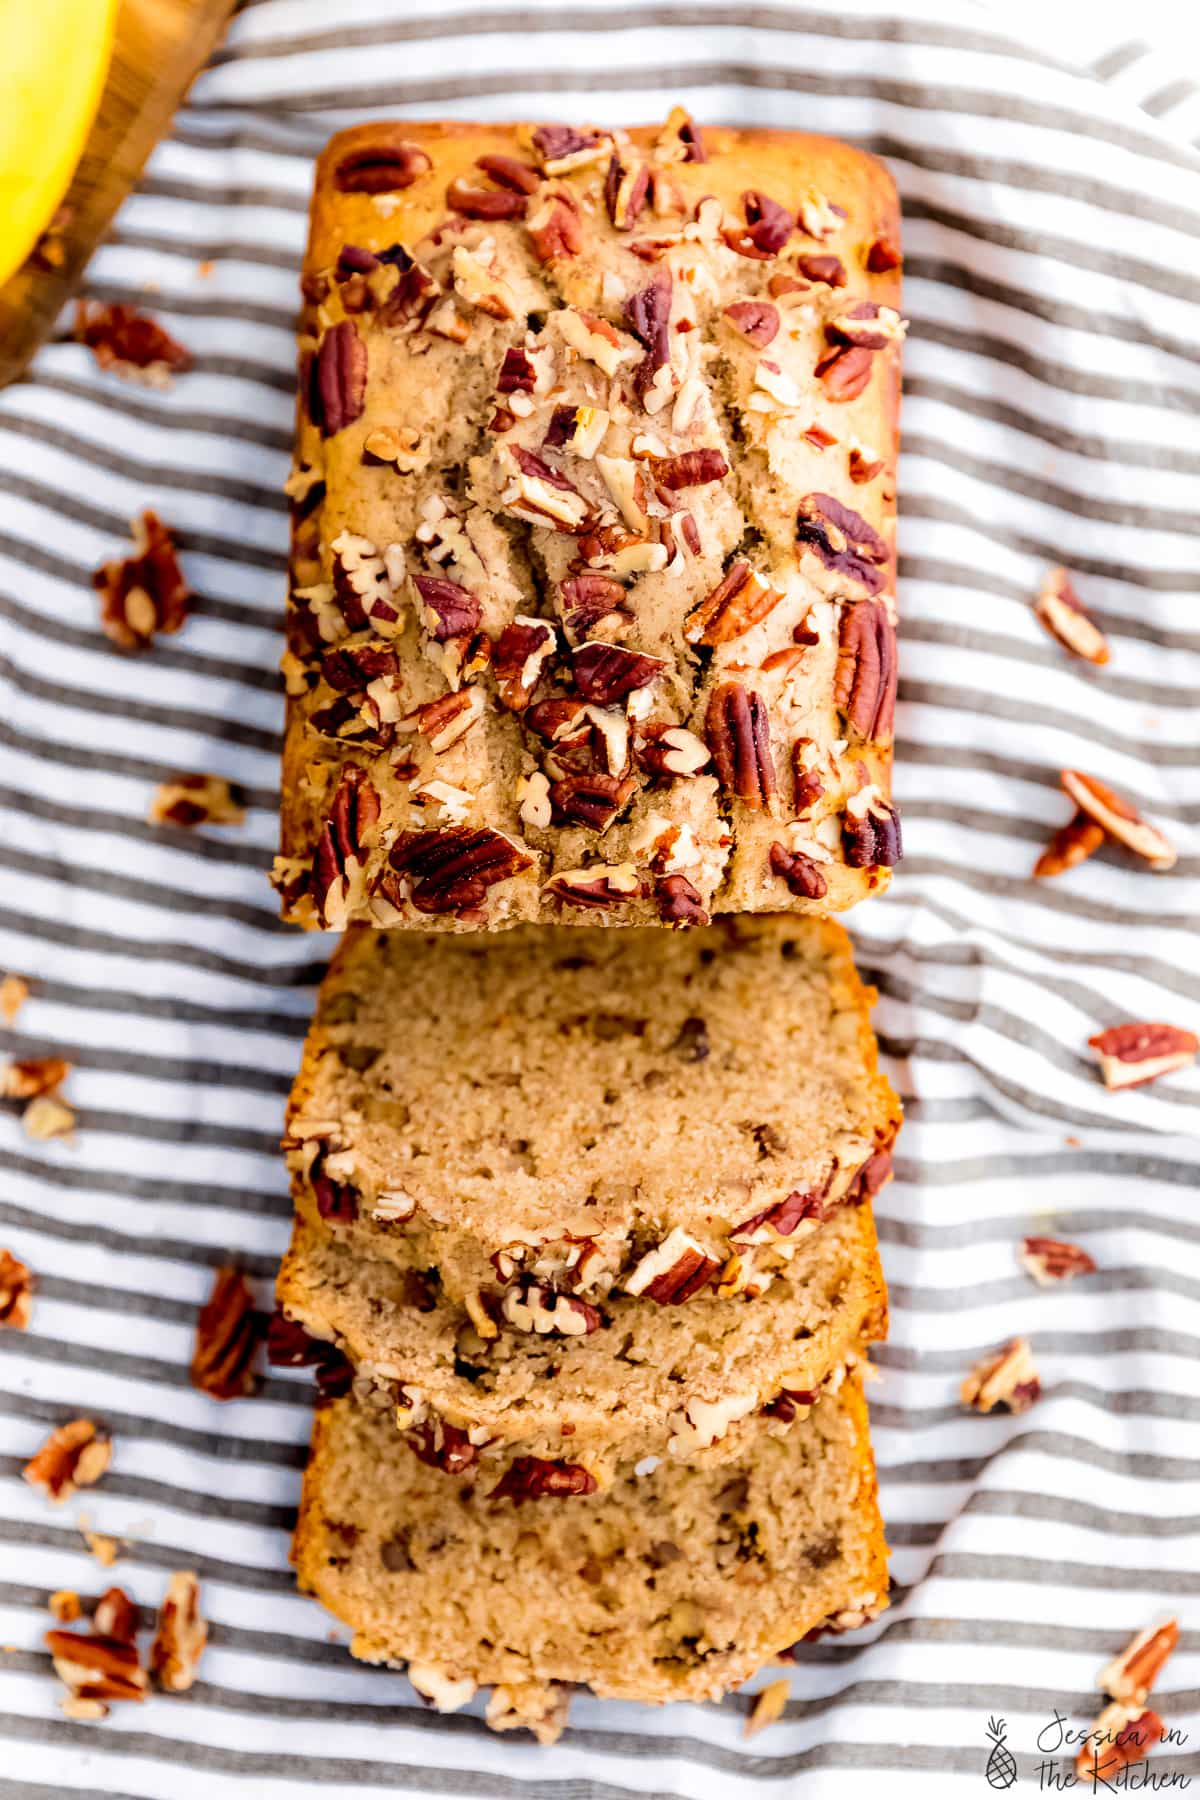 vegan banana bread with half of it sliced into three slices, then the rest whole, birds eye view, surrounded by pecans